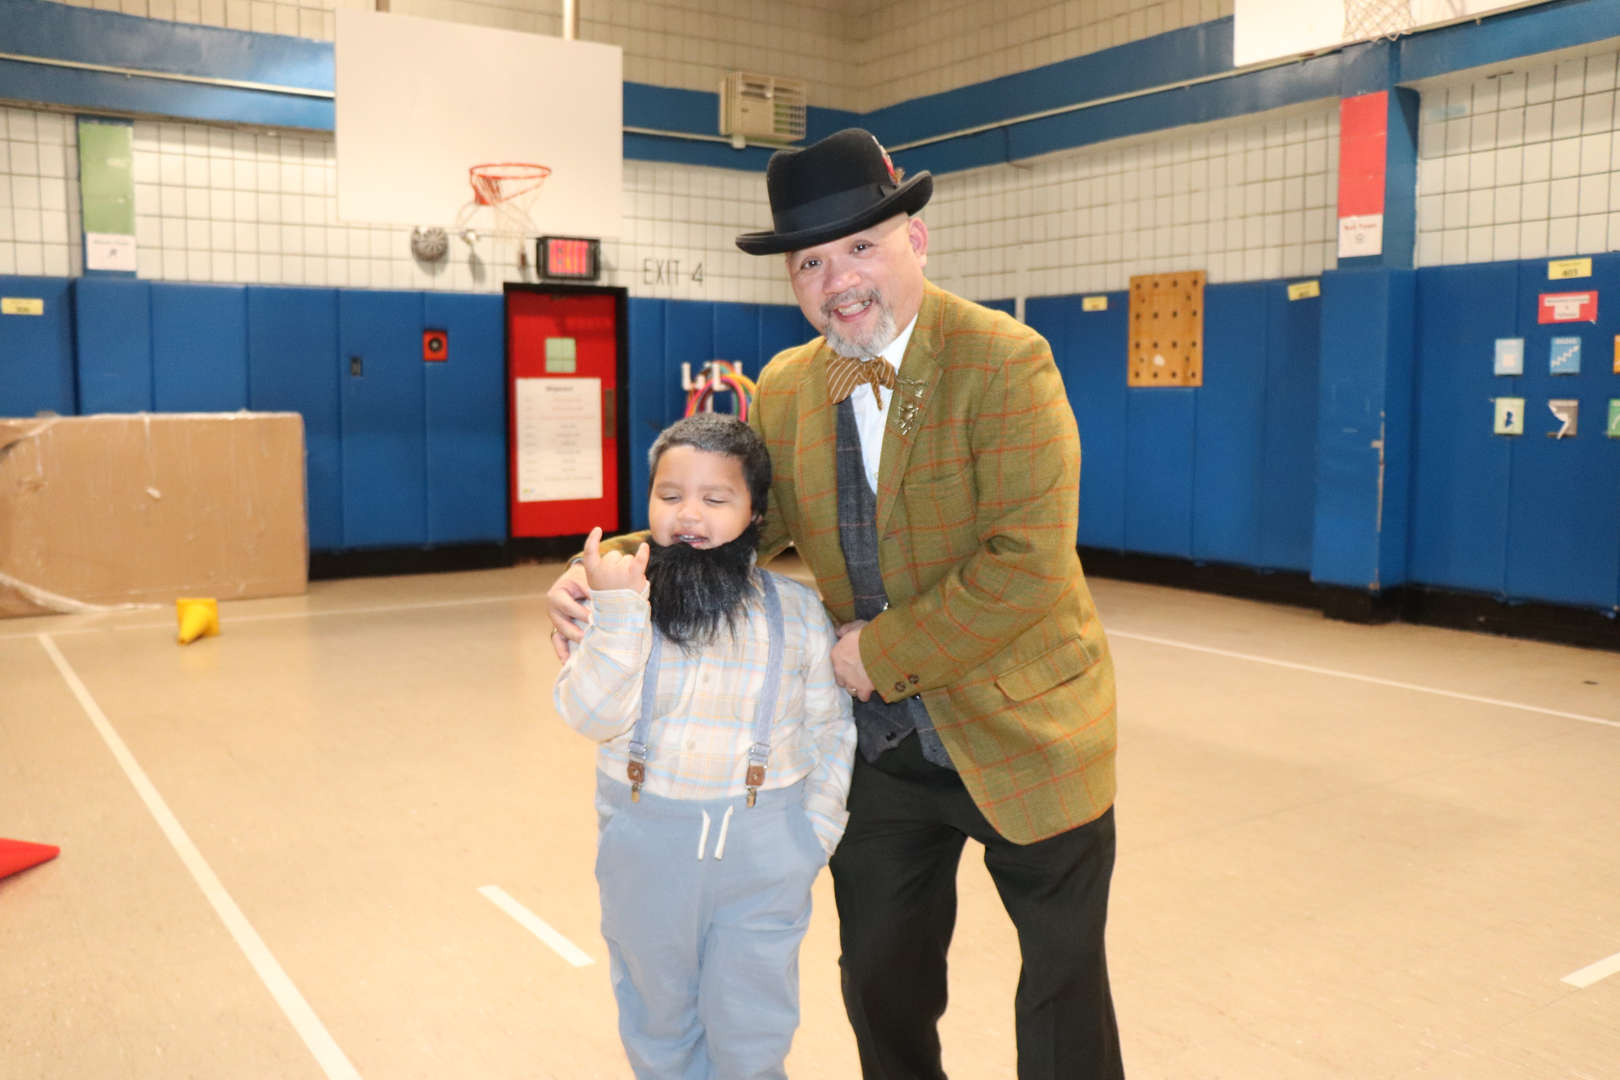 Mr. Yip and another student dressed like they are 100 years old.